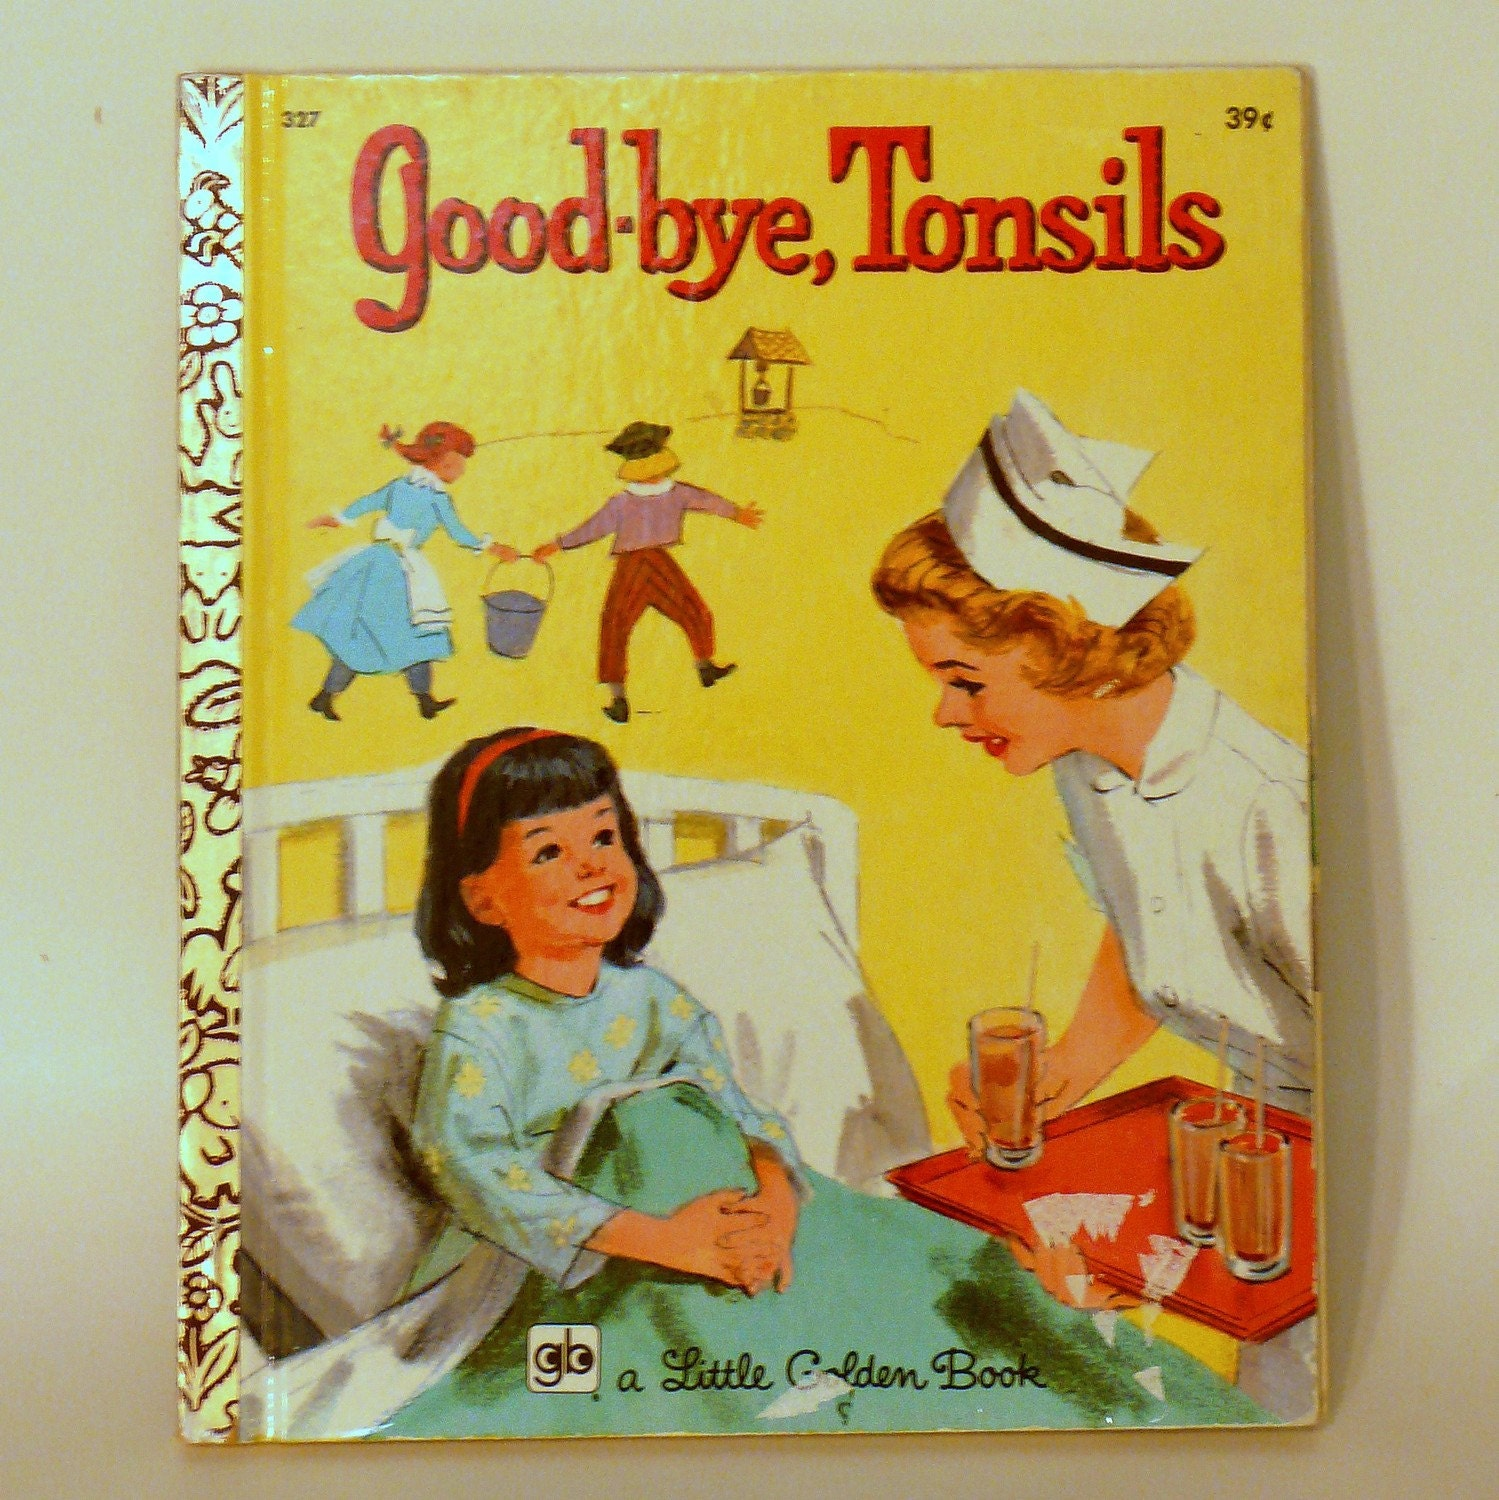 GOODBYE TONSILS A Little Golden Book 3rd Print By Inabind